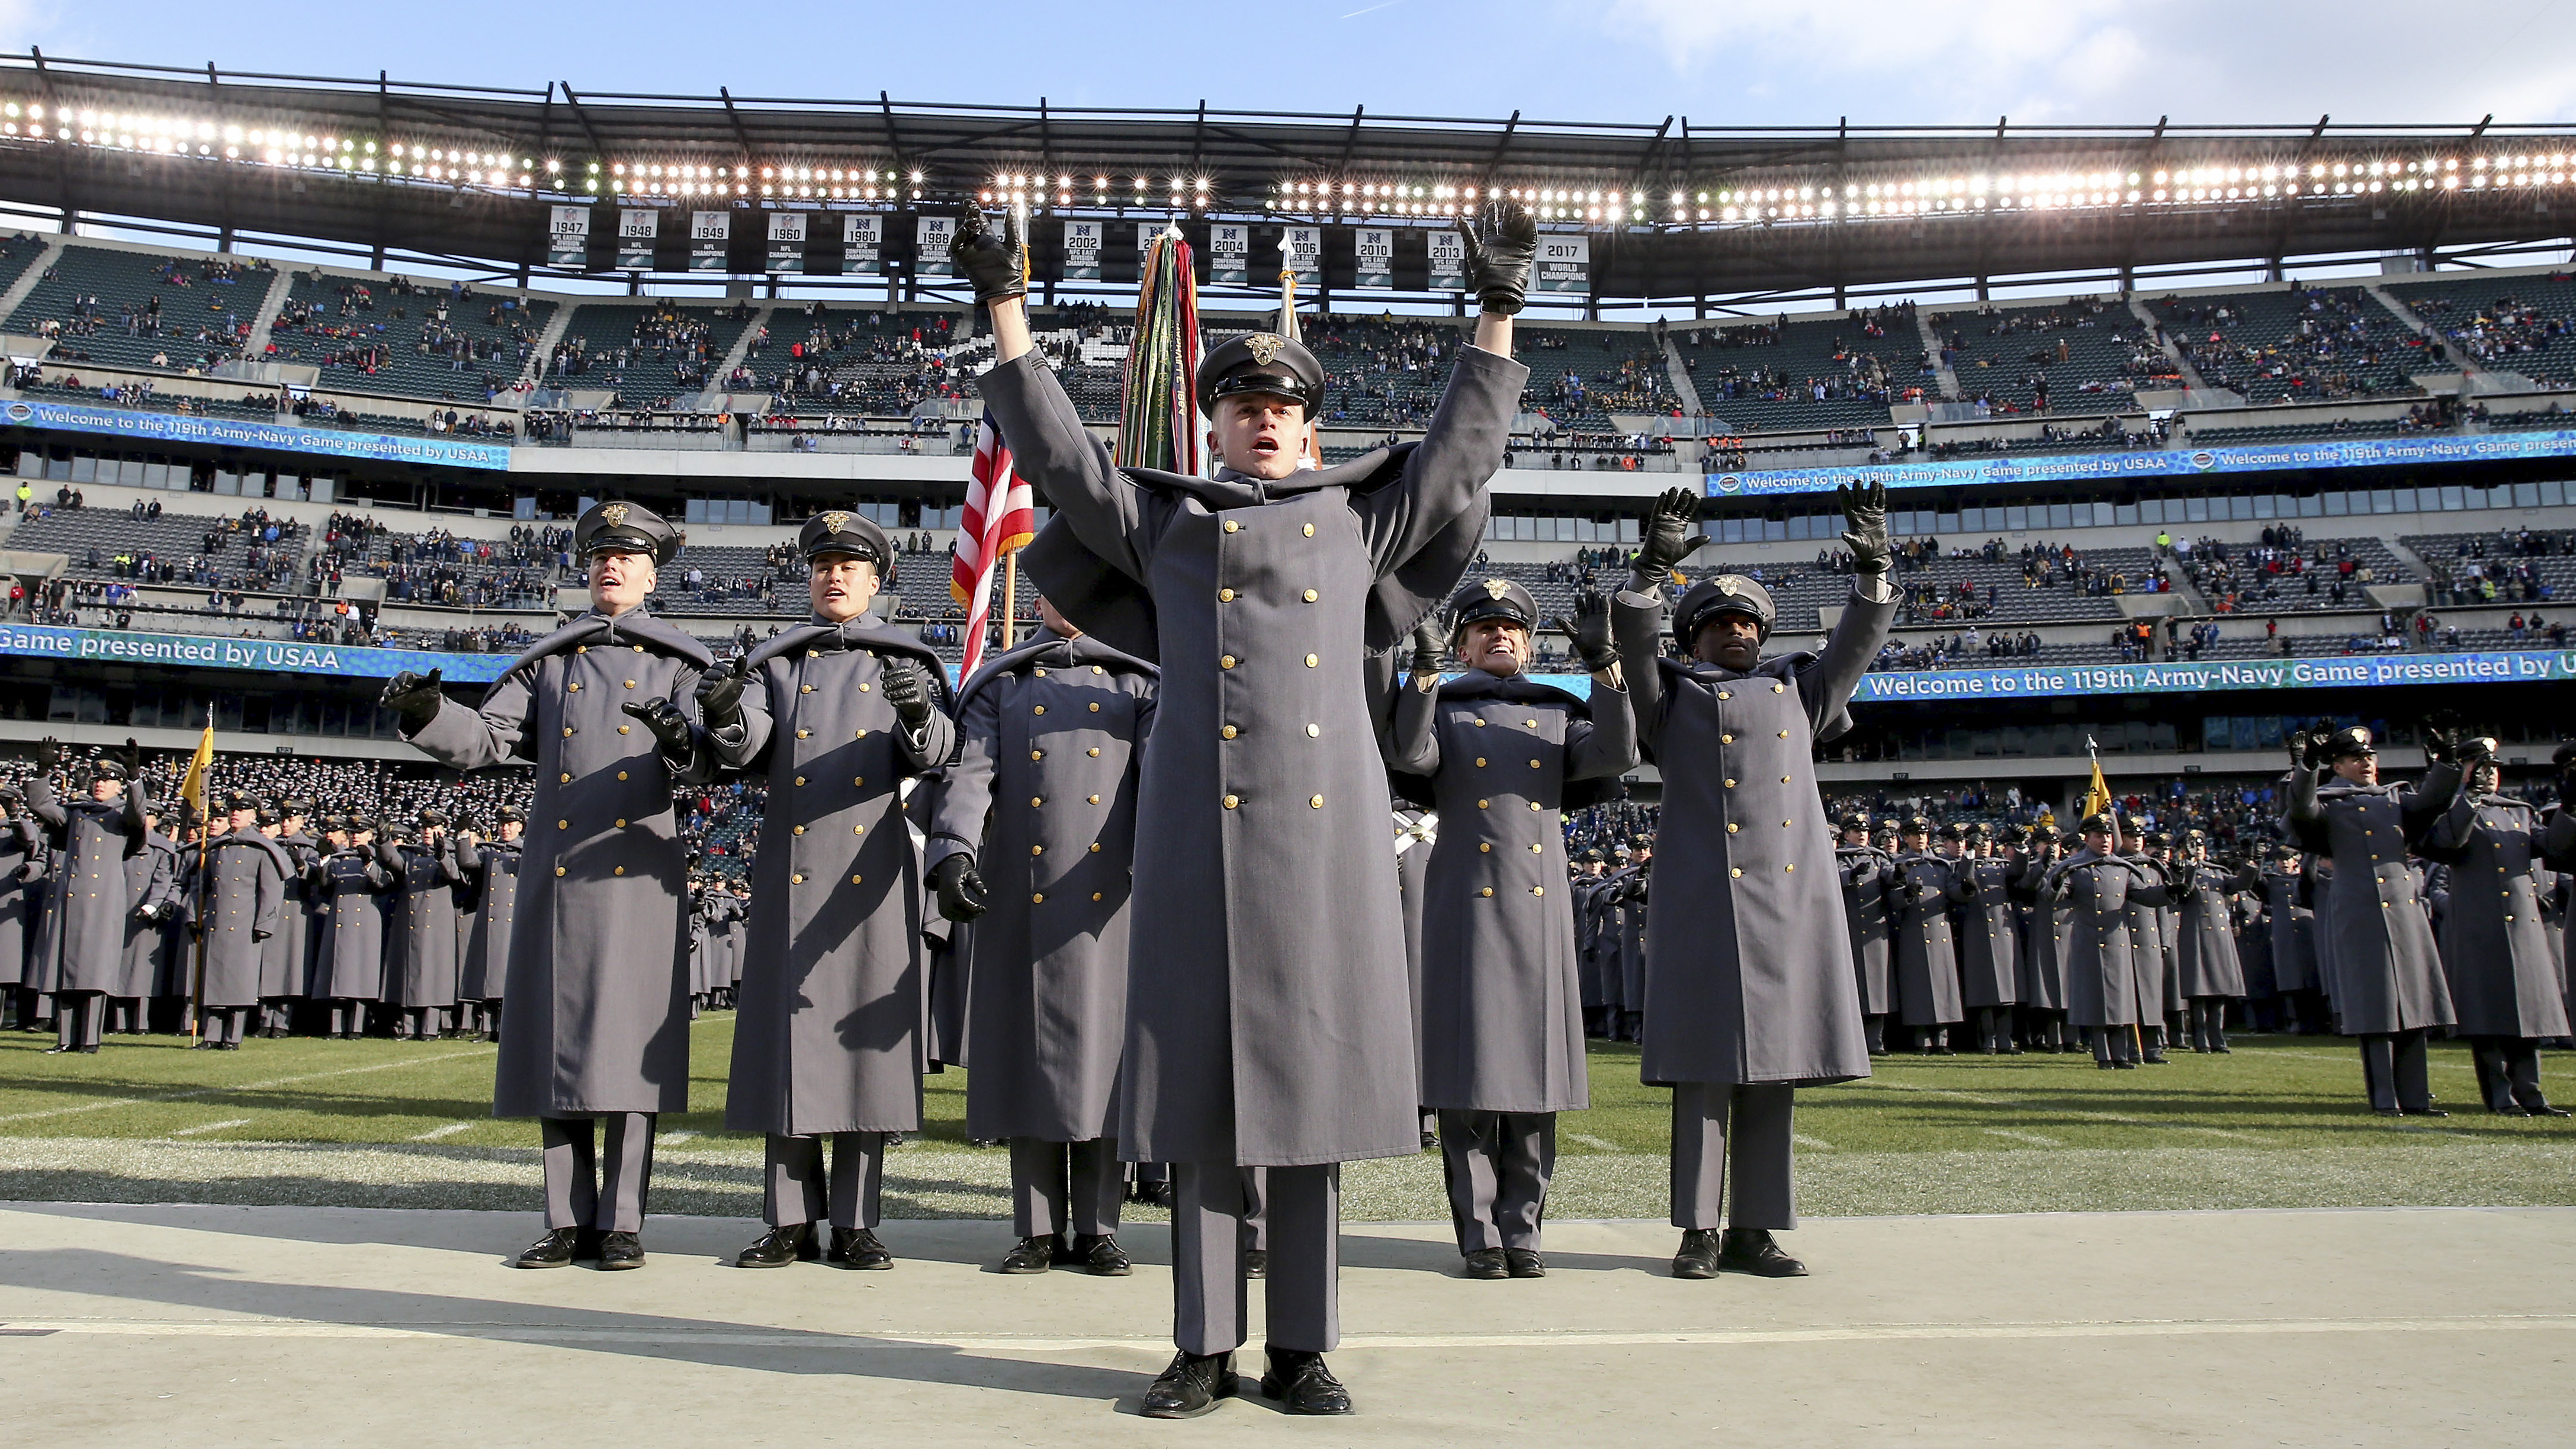 The Army cadets chant after they marched on the field before the game between the Army Black Knights and the Navy Midshipmen at Lincoln Financial Field on December 08, 2018 in Philadelphia, Pennsylvania. (Photo by Elsa/Getty Images)